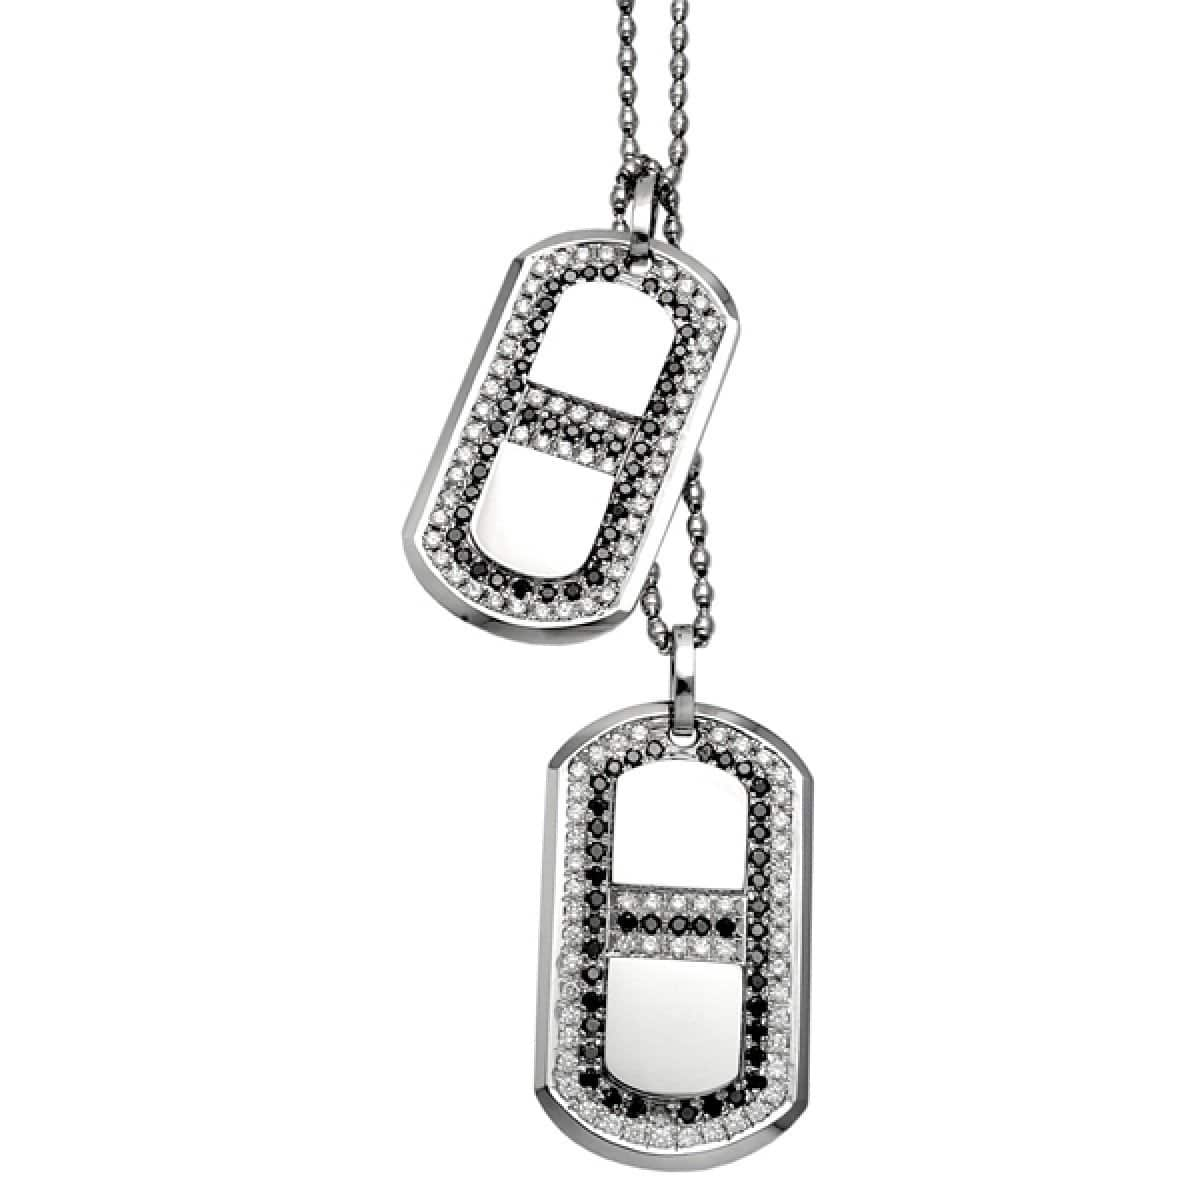 DOG TAGS - Chris Aire Fine Jewelry & Timepieces